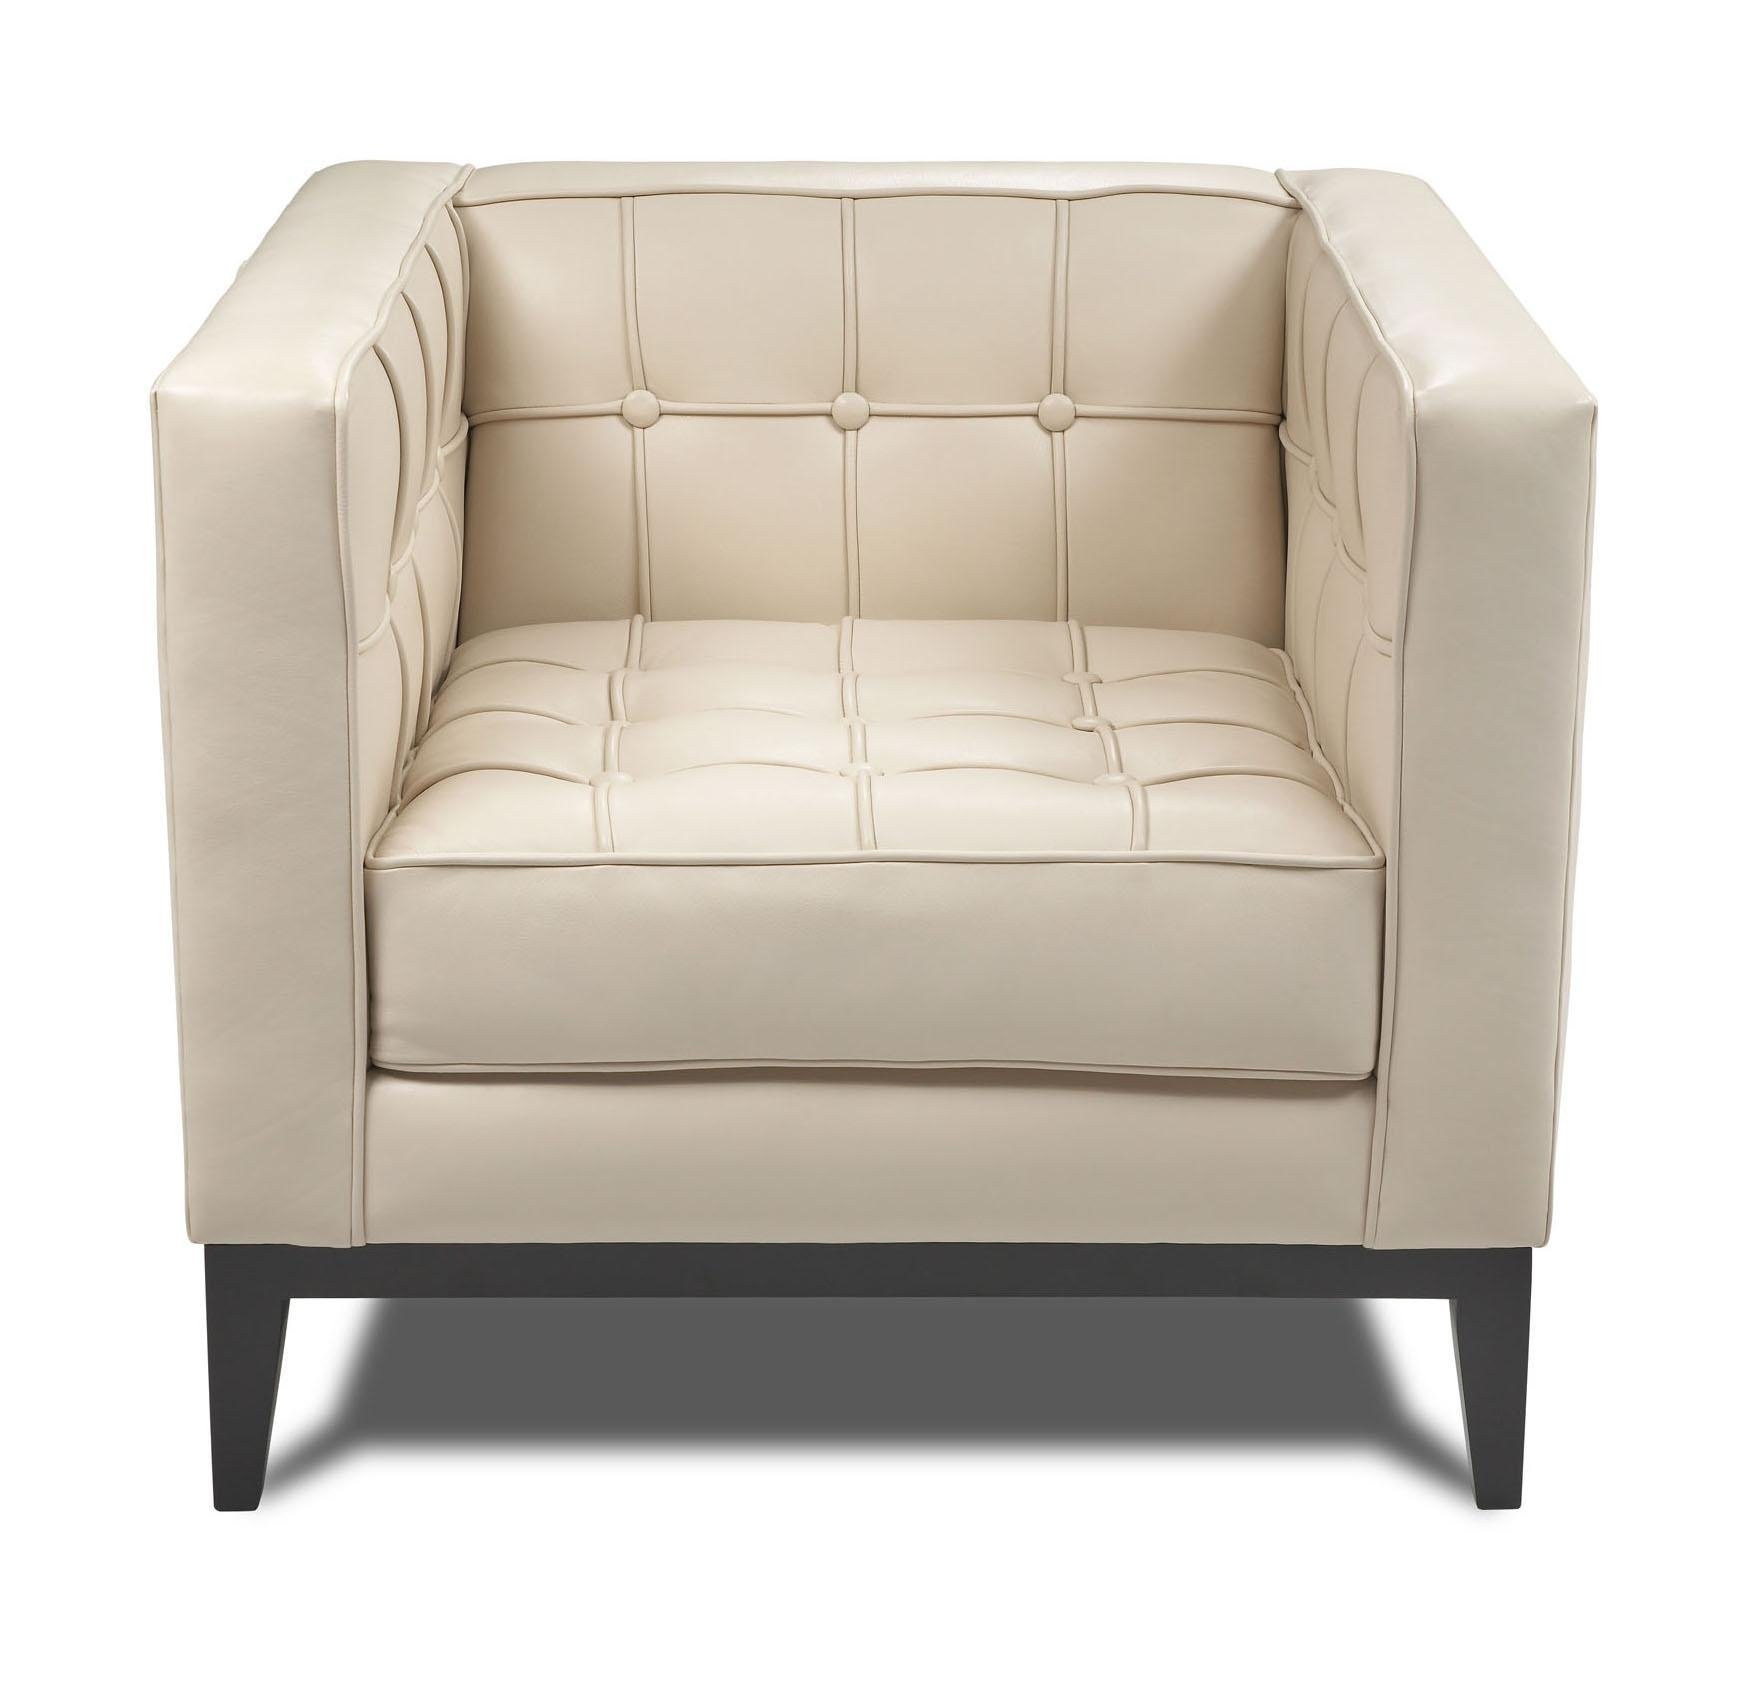 American Leather Luxe Sofa & Ottoman | Modern Design Regarding Luxe Sofas (Image 2 of 20)